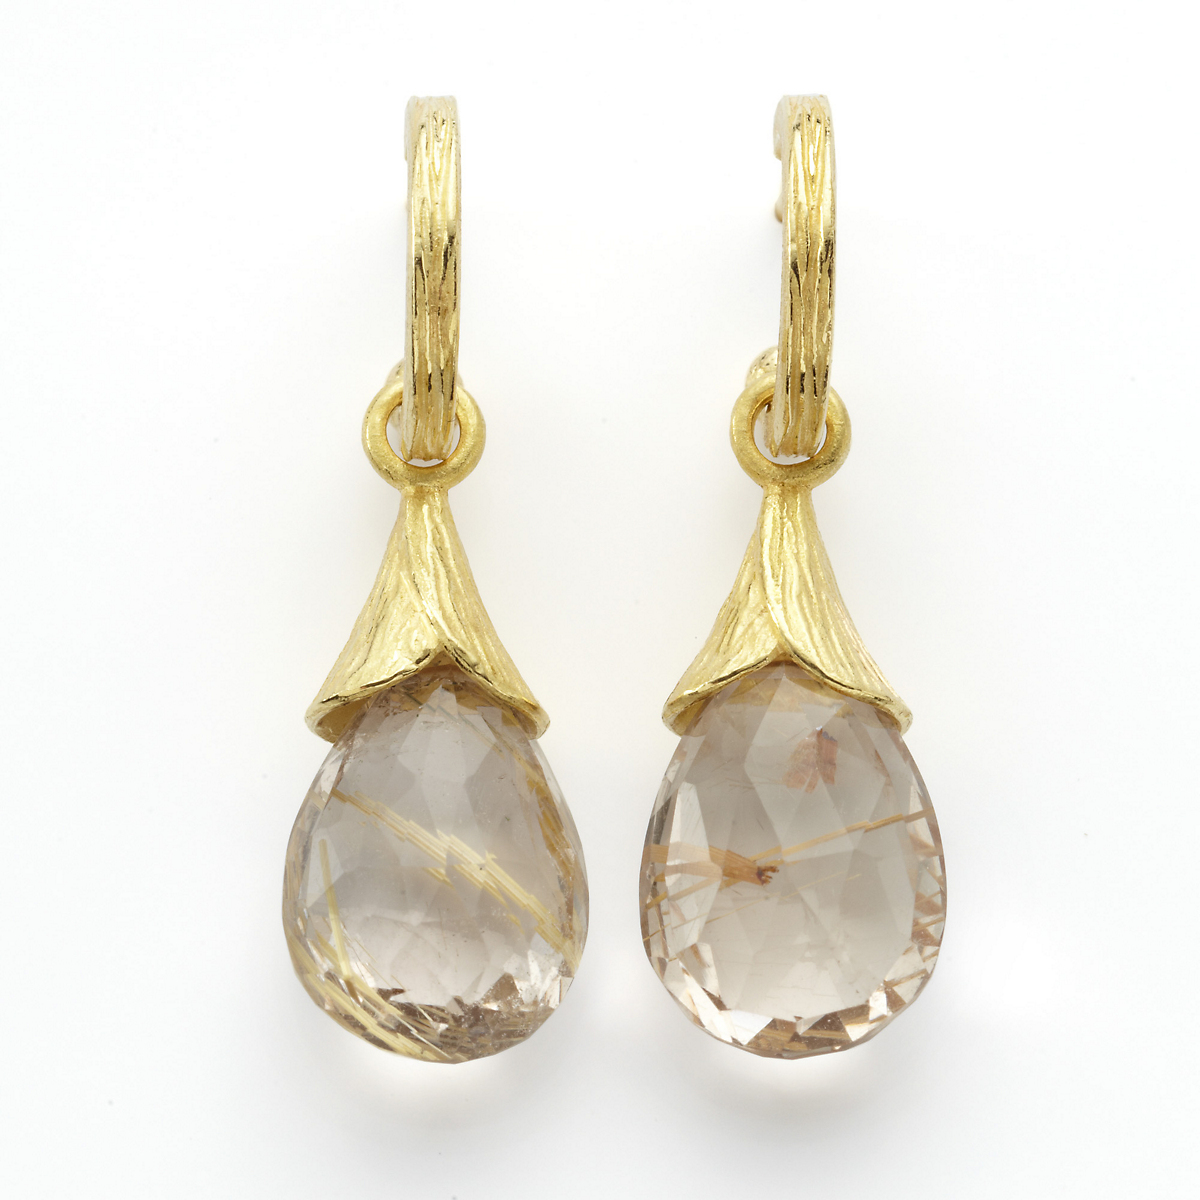 Barbara Heinrich Rutilated Quartz Earrings